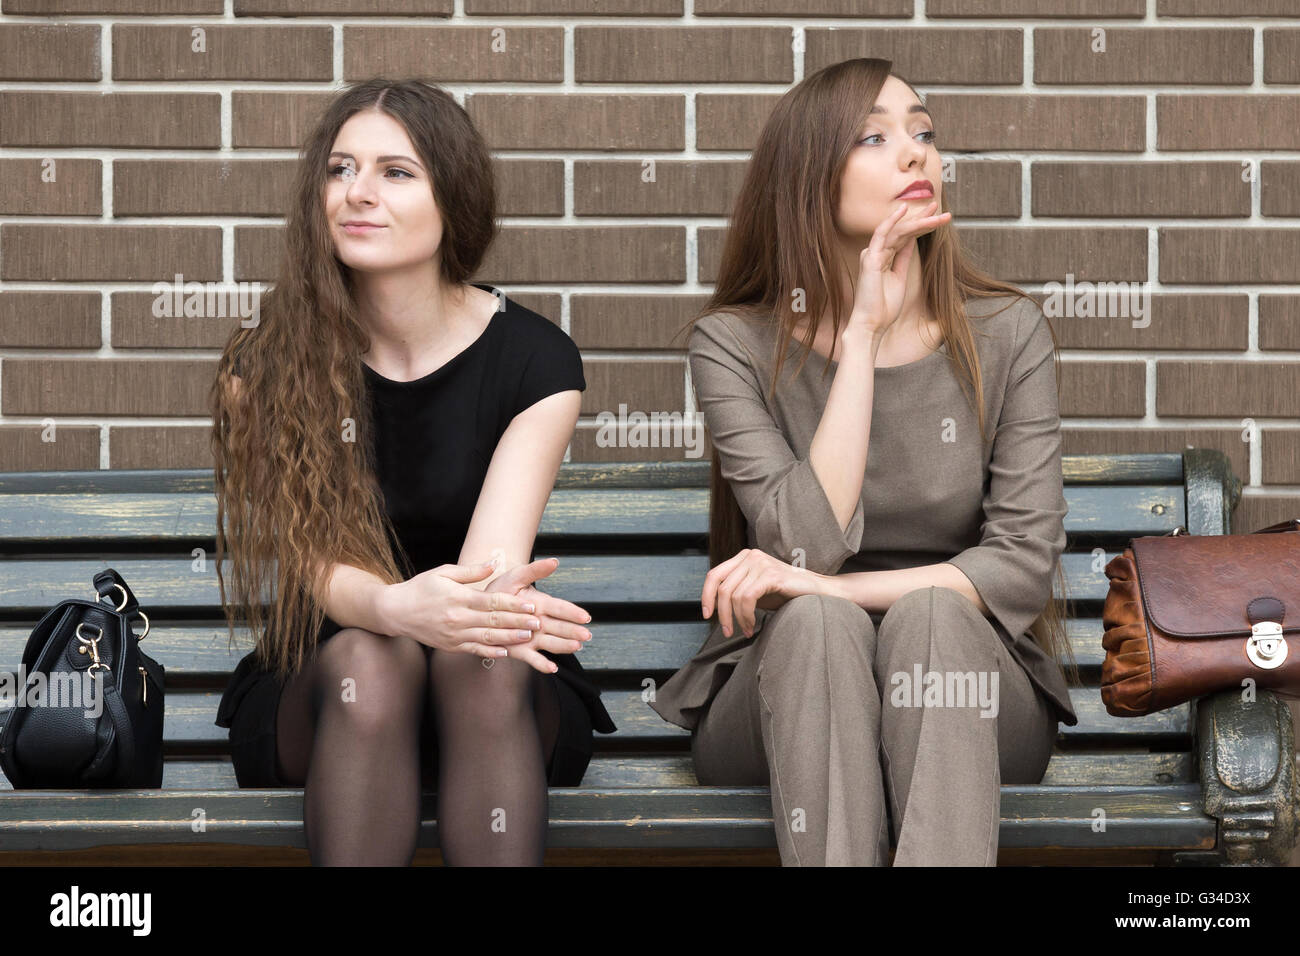 Full length portrait of two beautiful young female rivals sitting side by side on bench. Attractive caucasian office - Stock Image